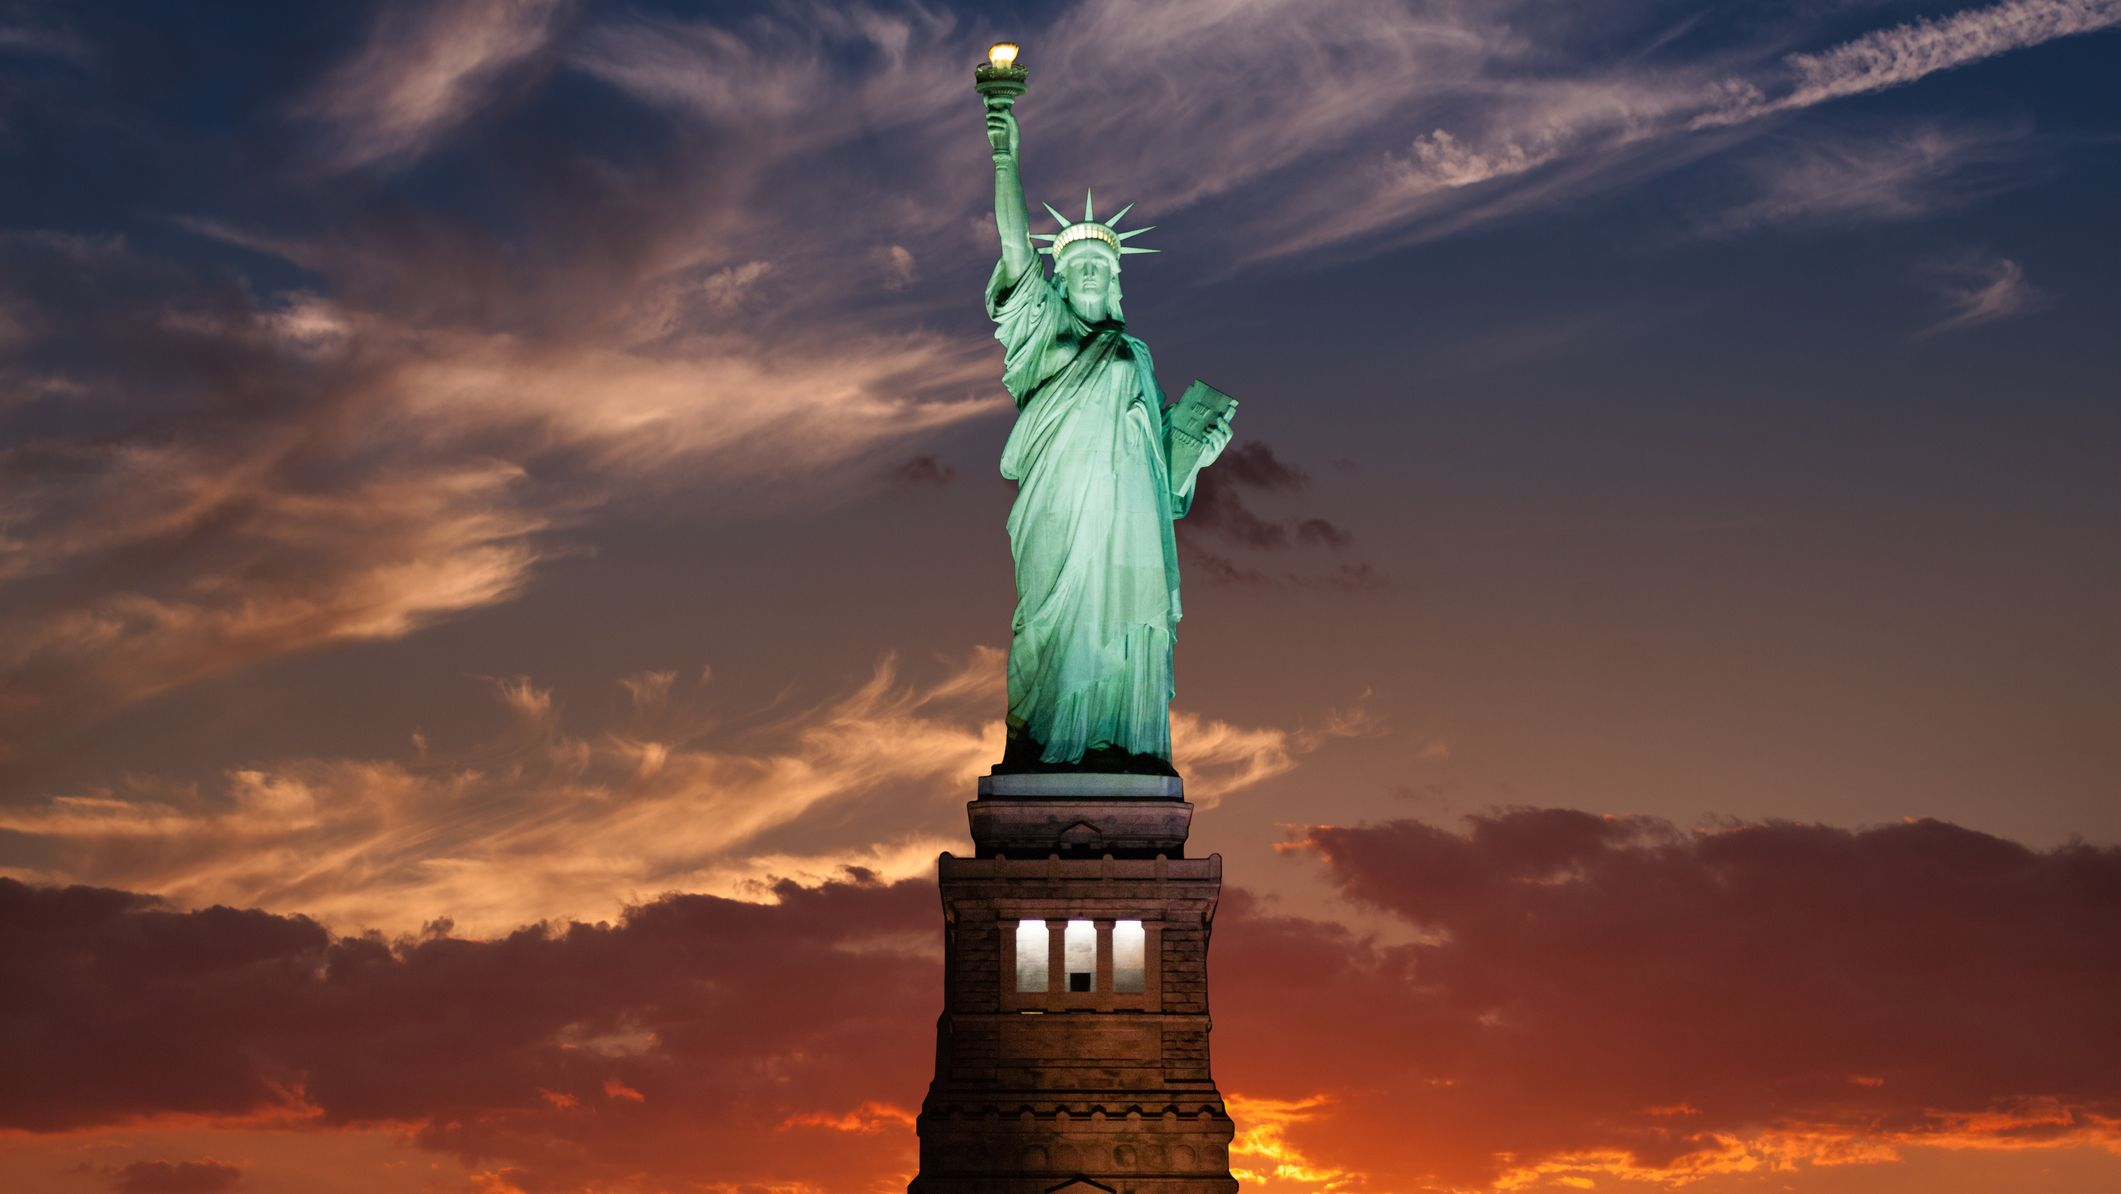 The Story Behind the Poem on the Statue of Liberty